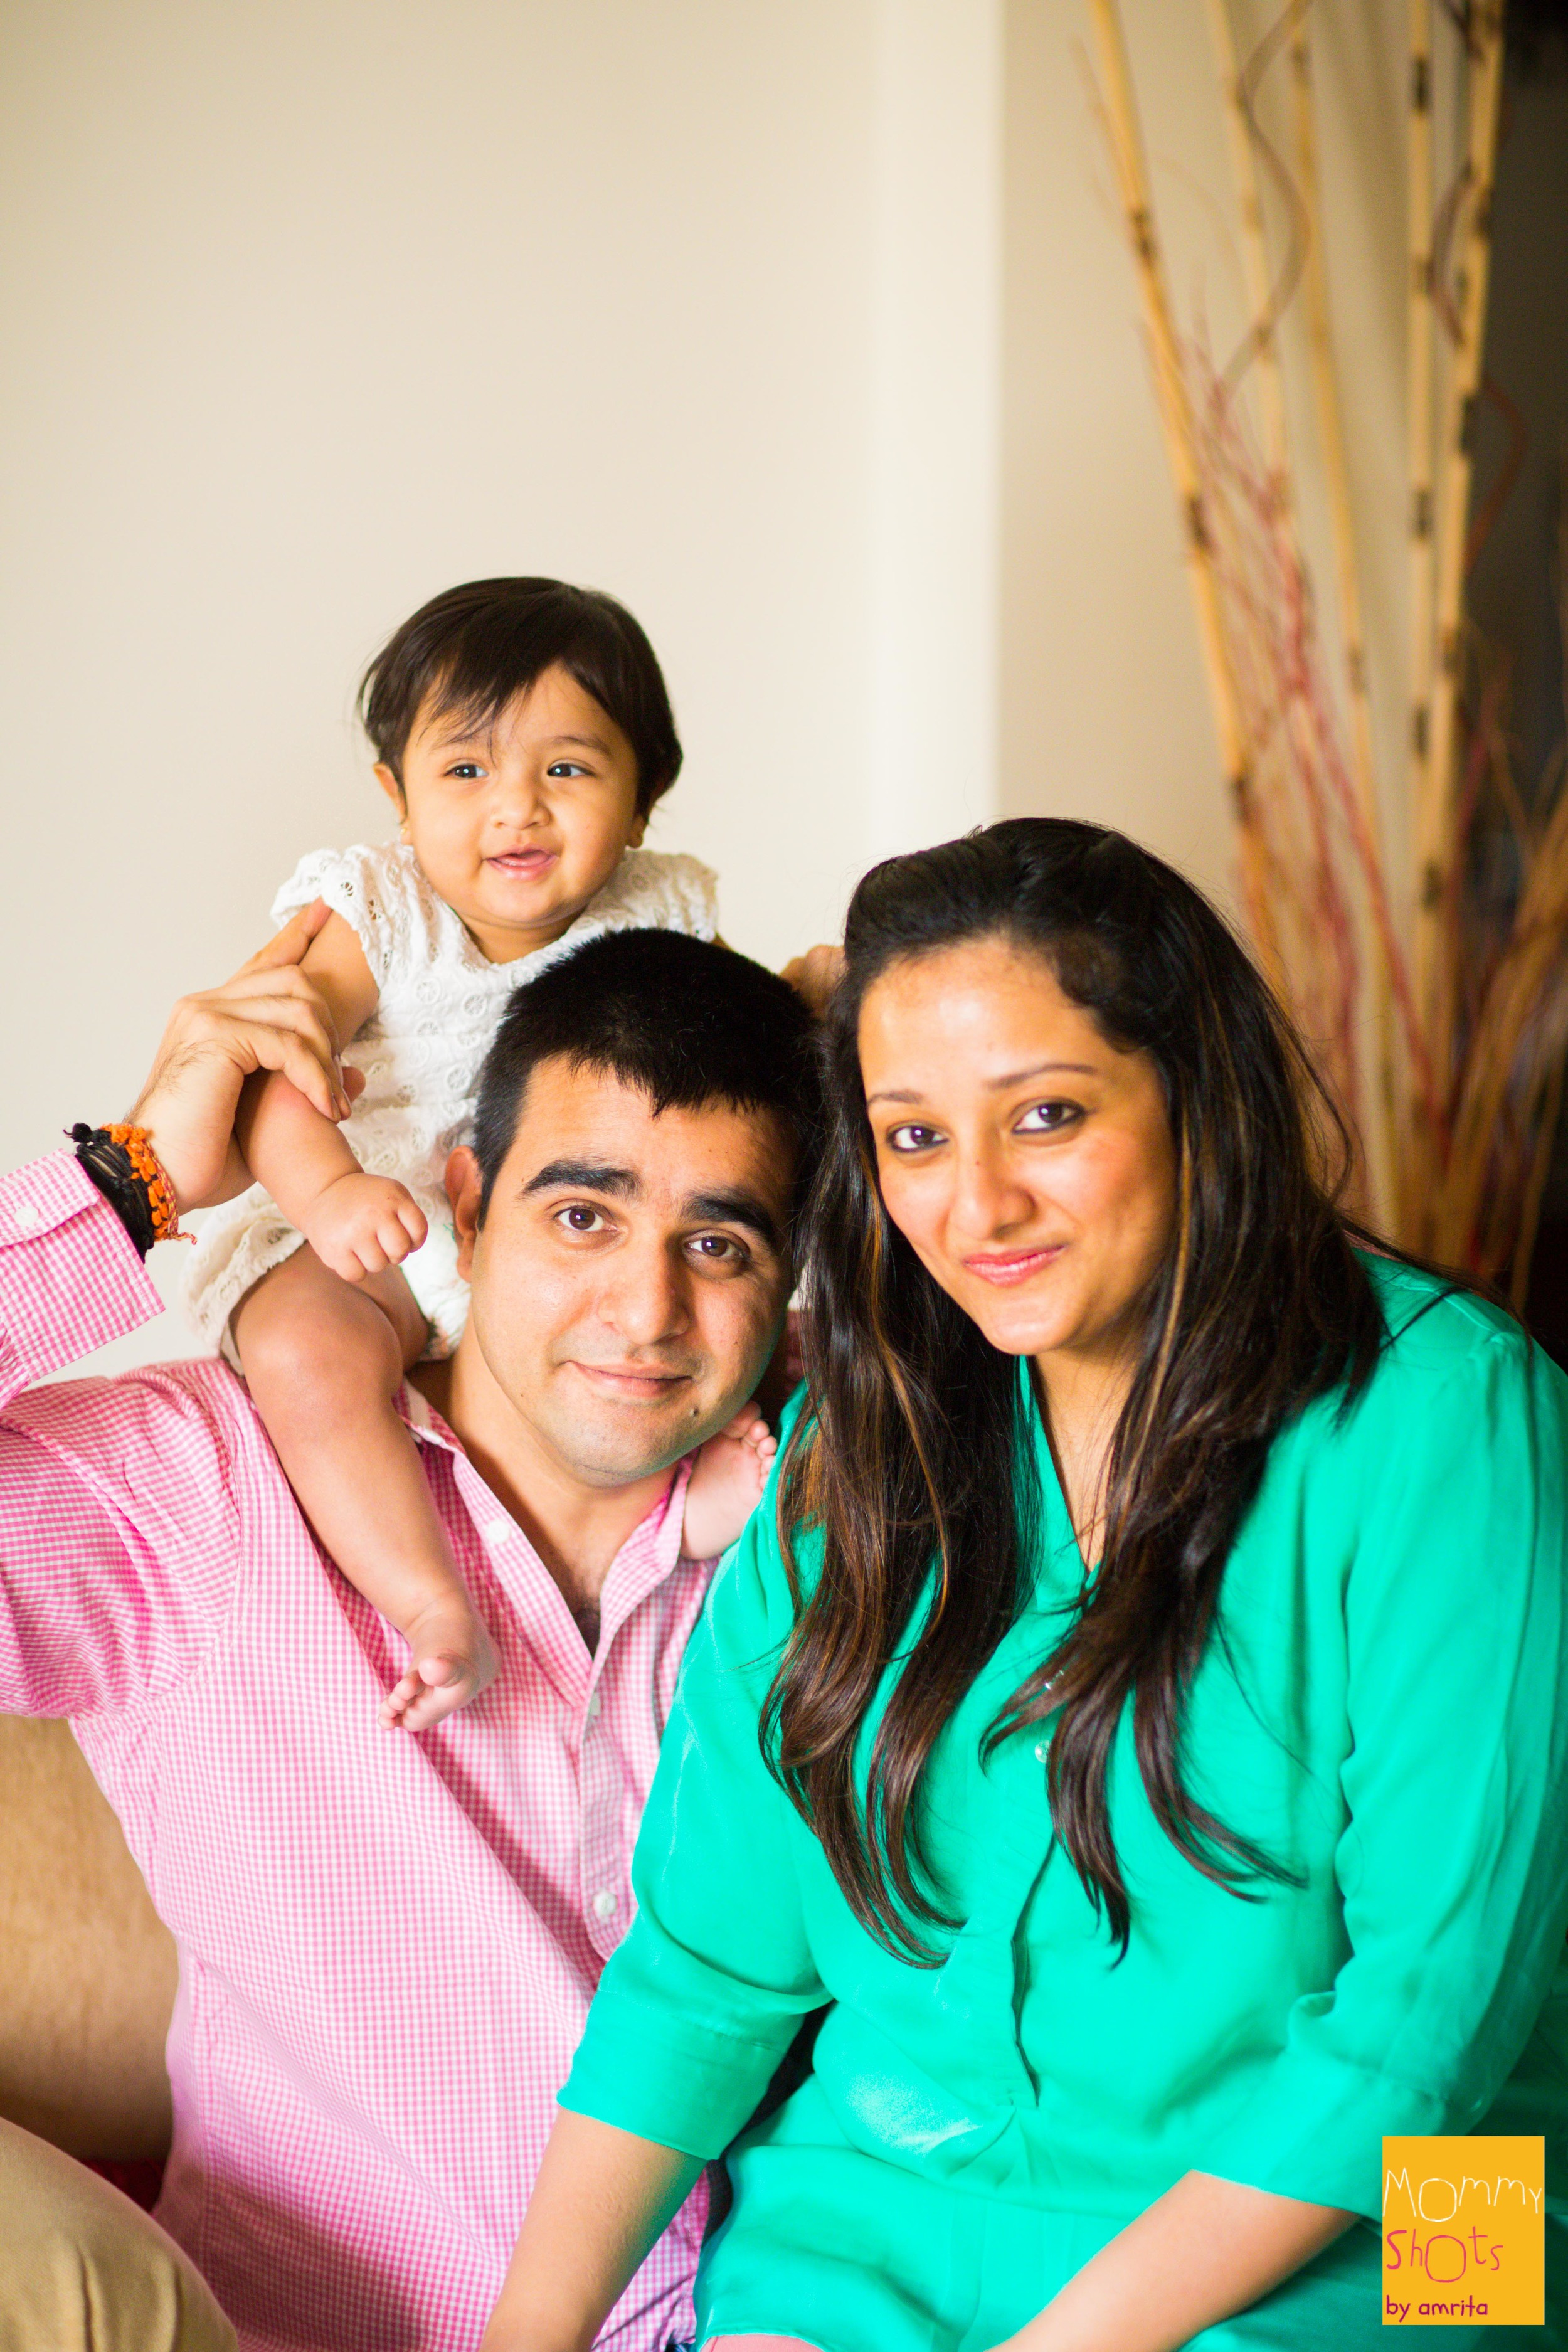 A pilot by profession, Sashank makes the most of his time with his little girl Saleena when he is home. Tushita is a stay-at-home mum, by choice, which ain't no easy feat! Sashank whole-heartedly insists that she takes some 'me-time' off when he is around and does what every stay-at-home mum can do, without a doubt!